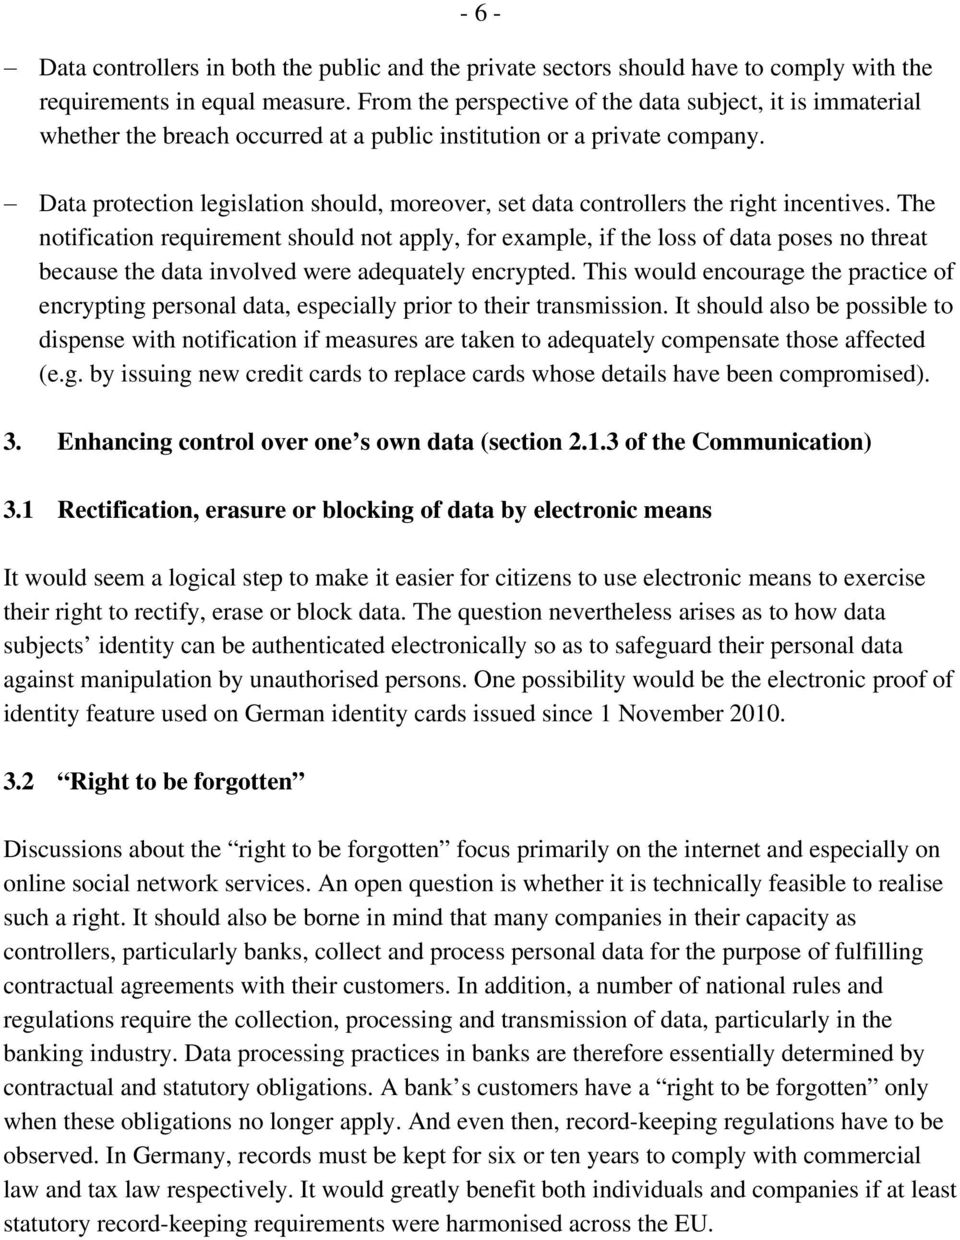 Data protection legislation should, moreover, set data controllers the right incentives.